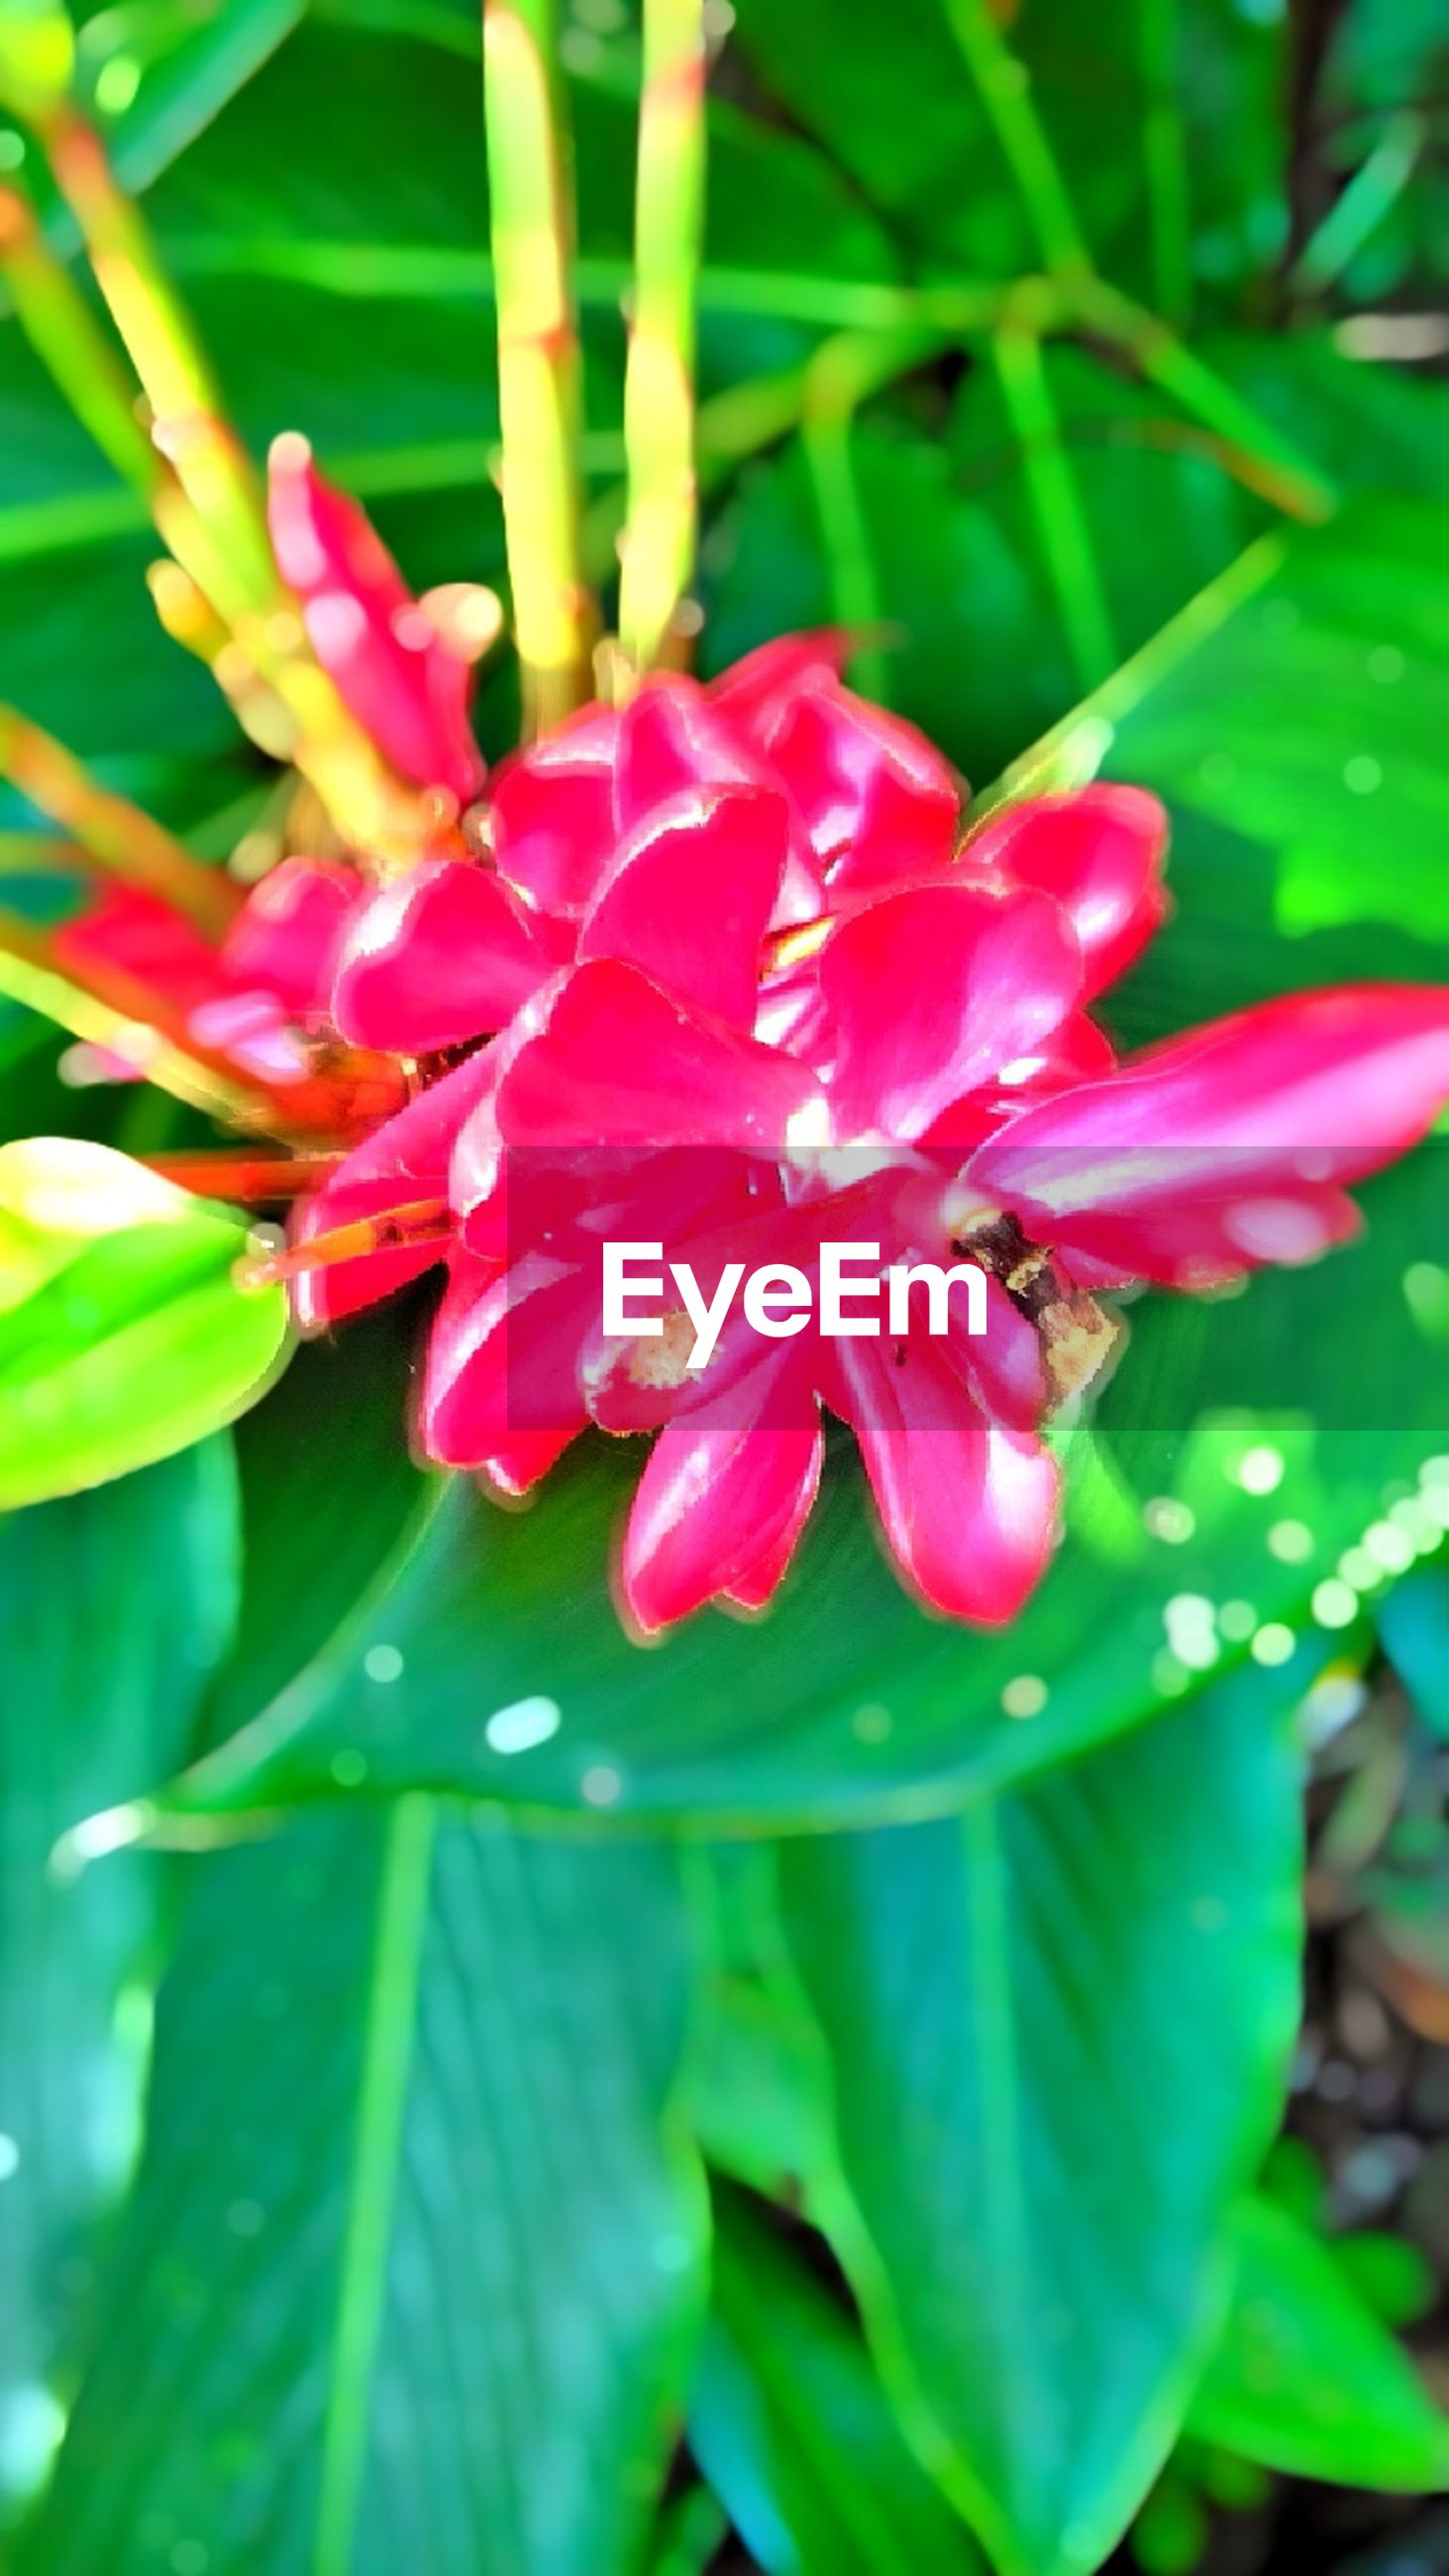 flower, petal, freshness, growth, leaf, fragility, flower head, beauty in nature, pink color, plant, nature, blooming, close-up, red, focus on foreground, green color, park - man made space, in bloom, outdoors, day